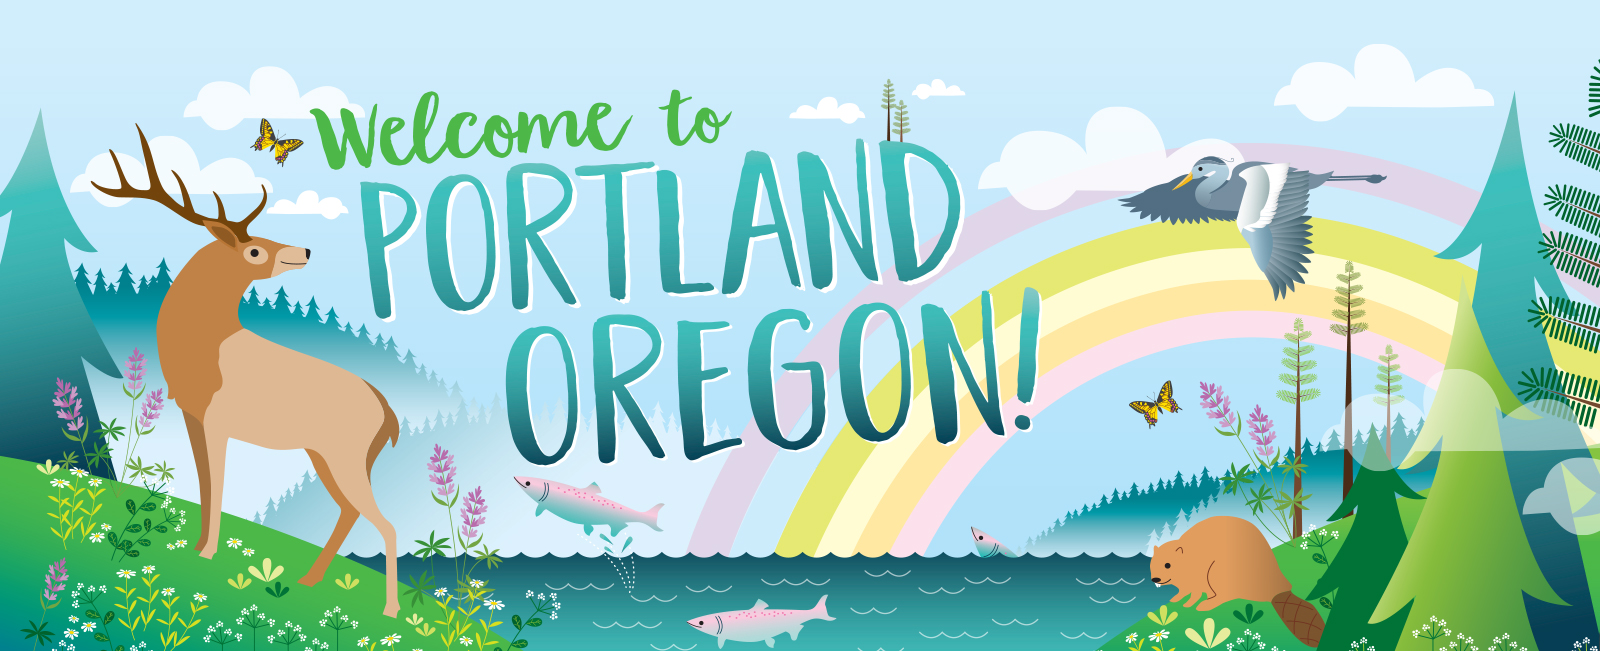 WELCOME TO PORTLAND, AMY RUPPEL, SOUTH PASSENGER ARRIVALS